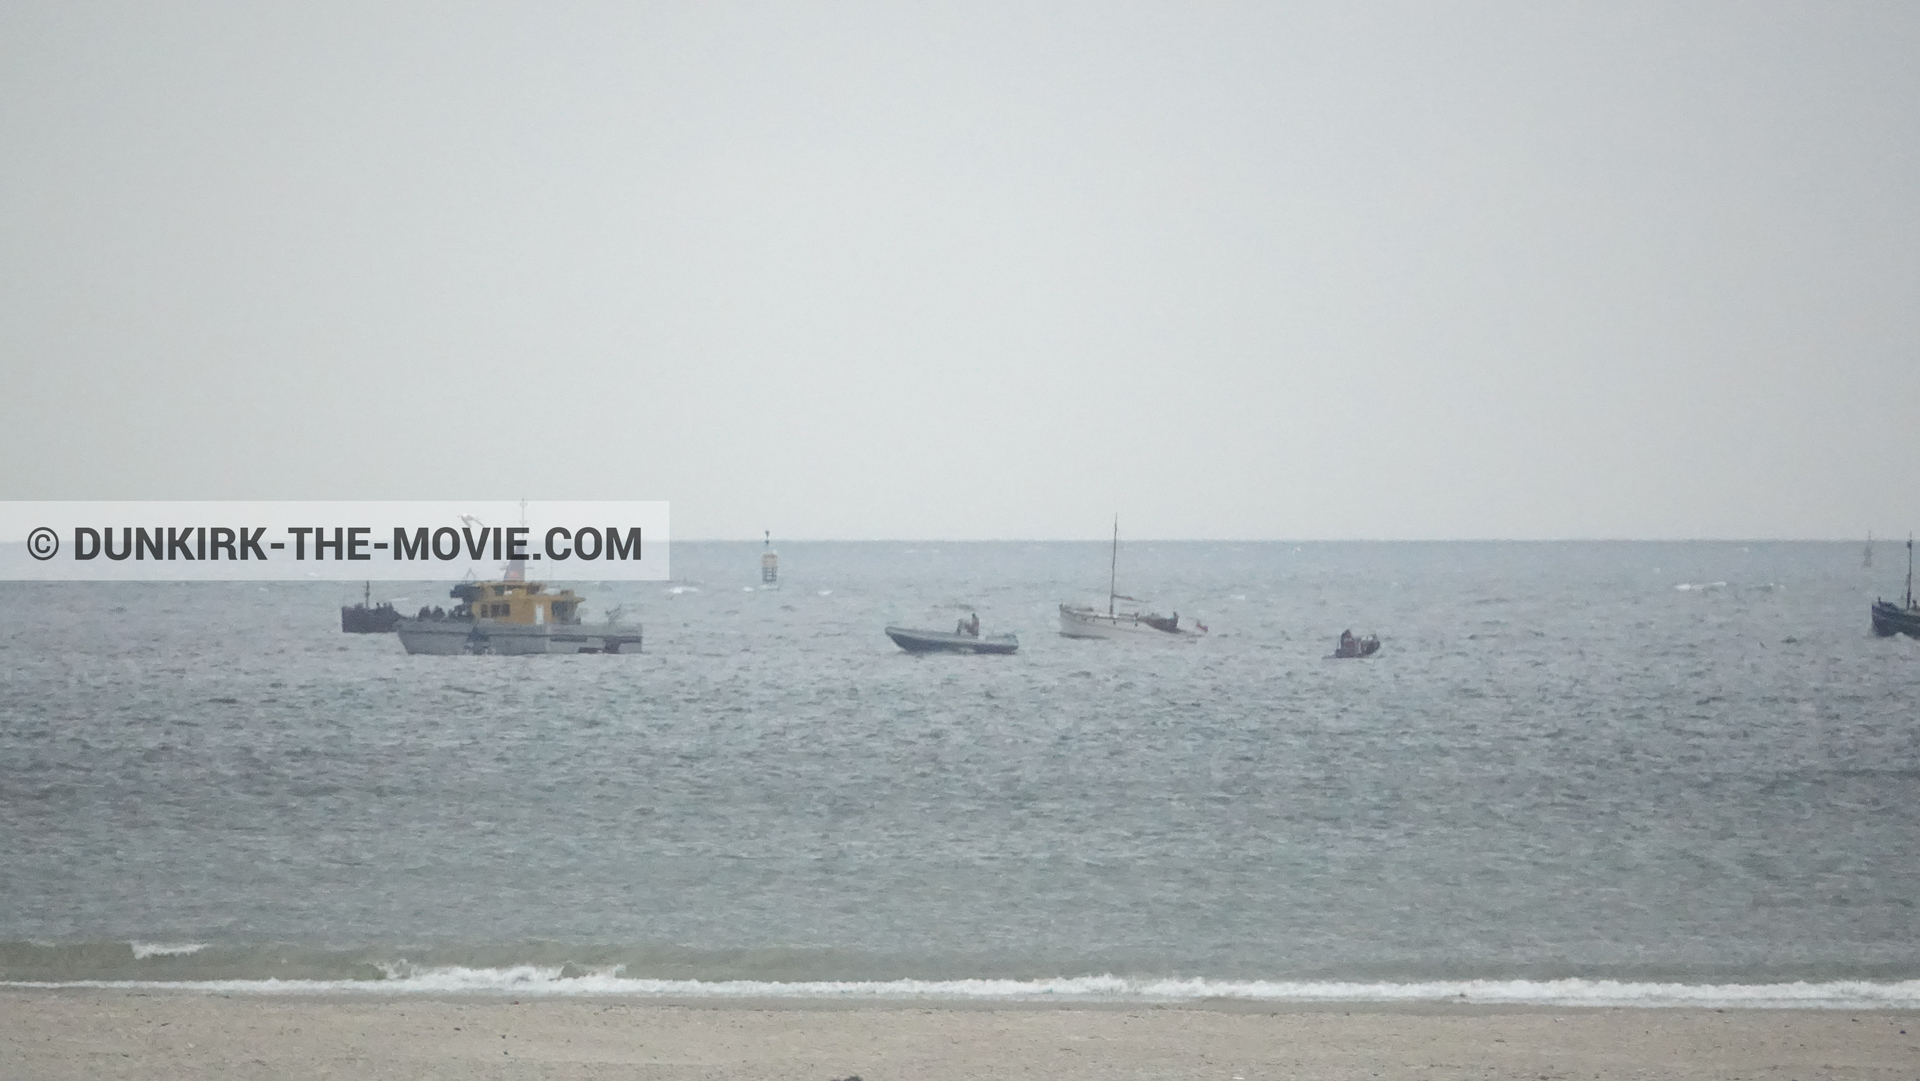 Picture with boat, grey sky, Ocean Wind 4, beach,  from behind the scene of the Dunkirk movie by Nolan